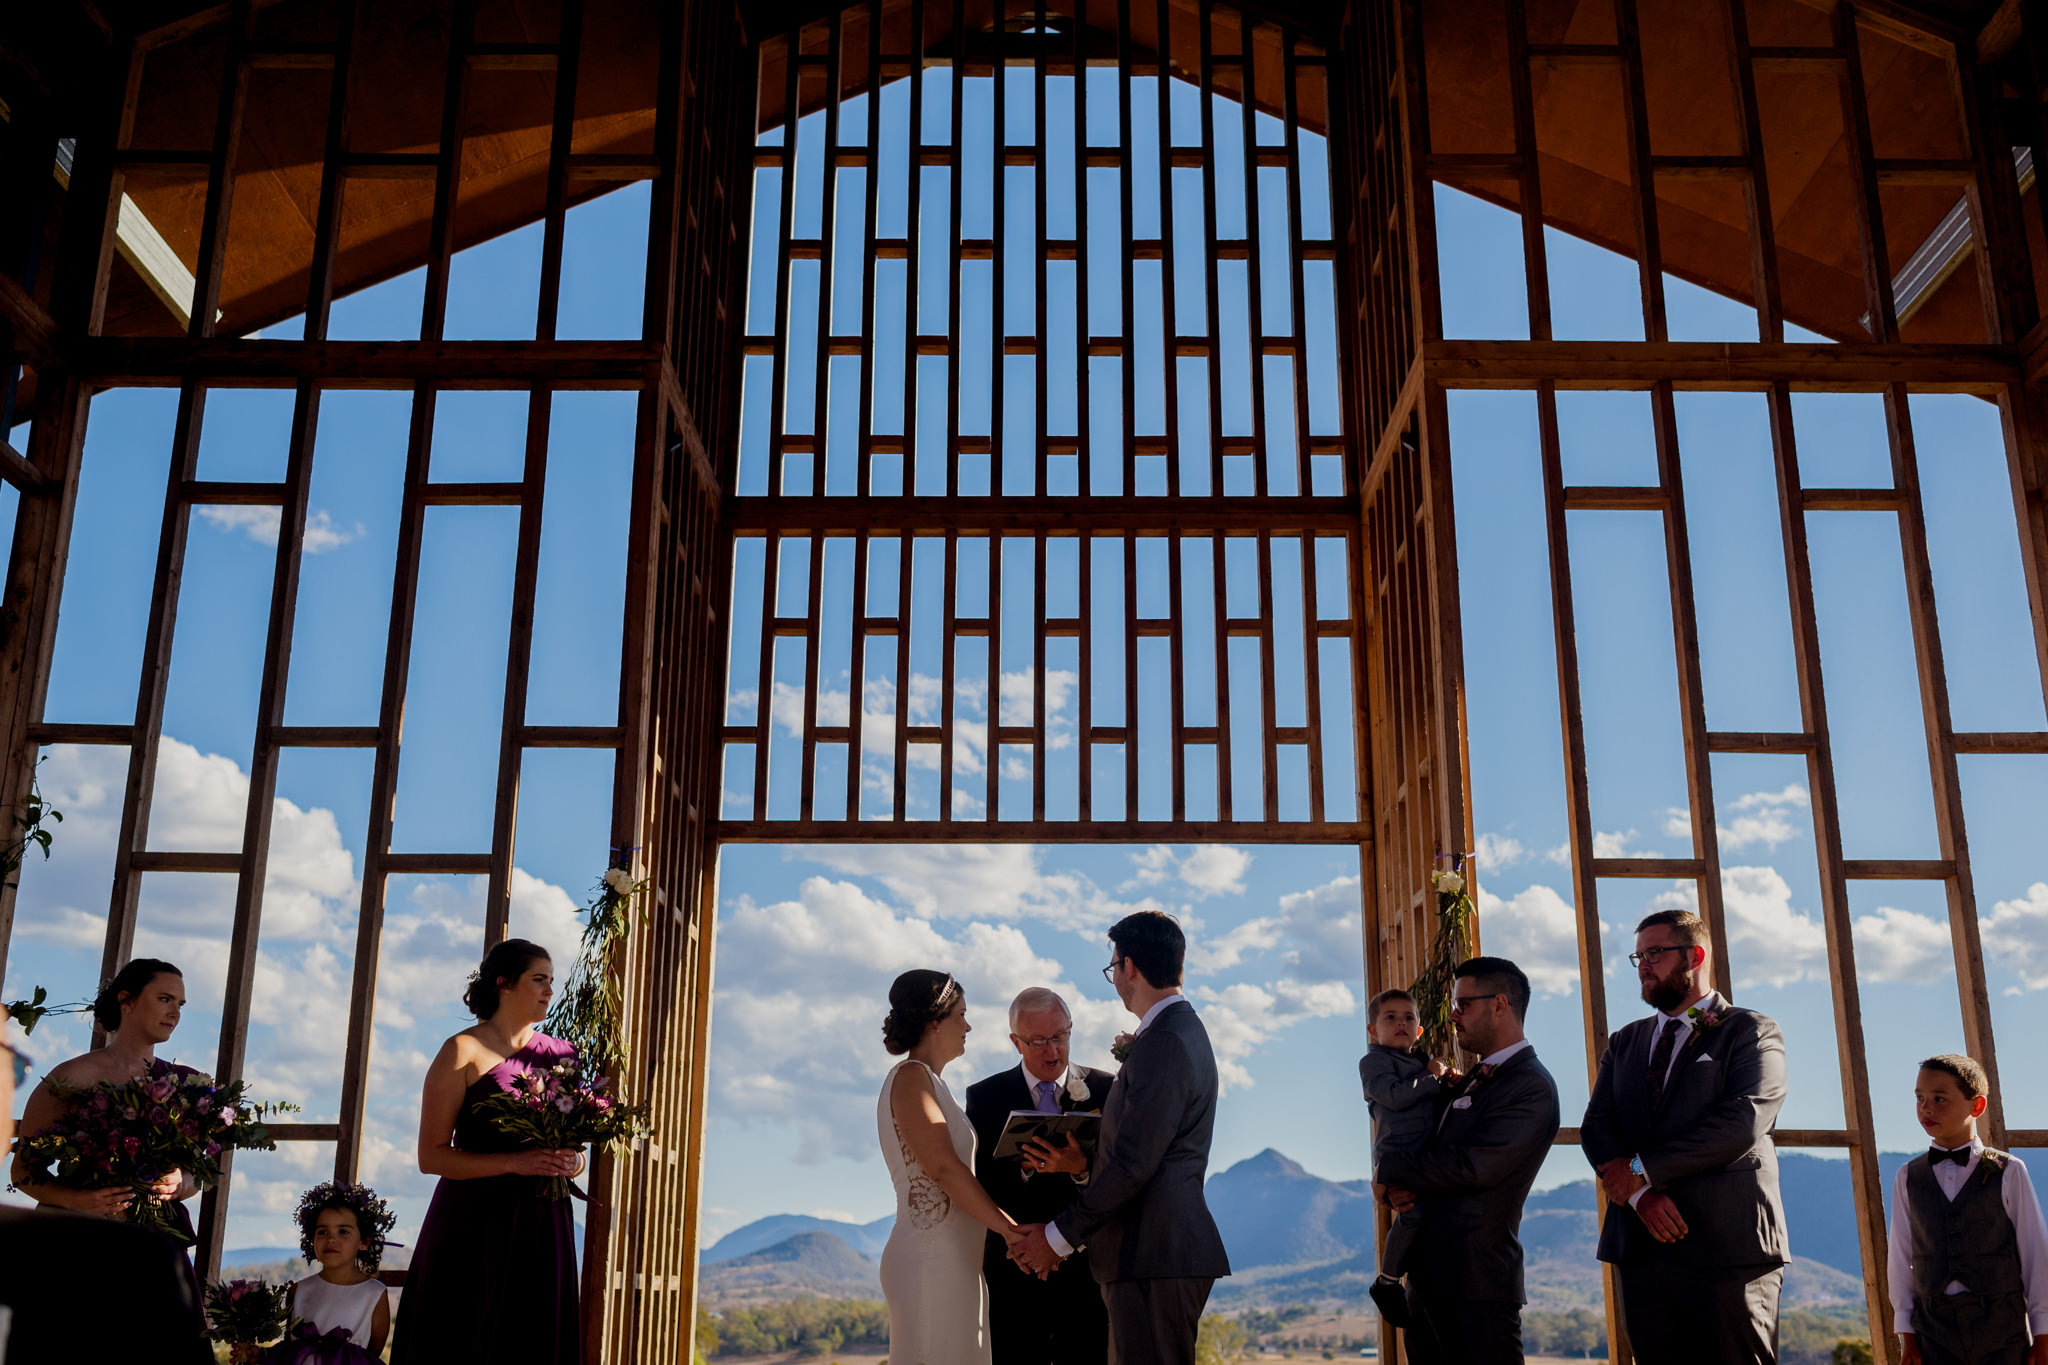 Wedding ceremony at Kooroomba Lavender Farm Chapel